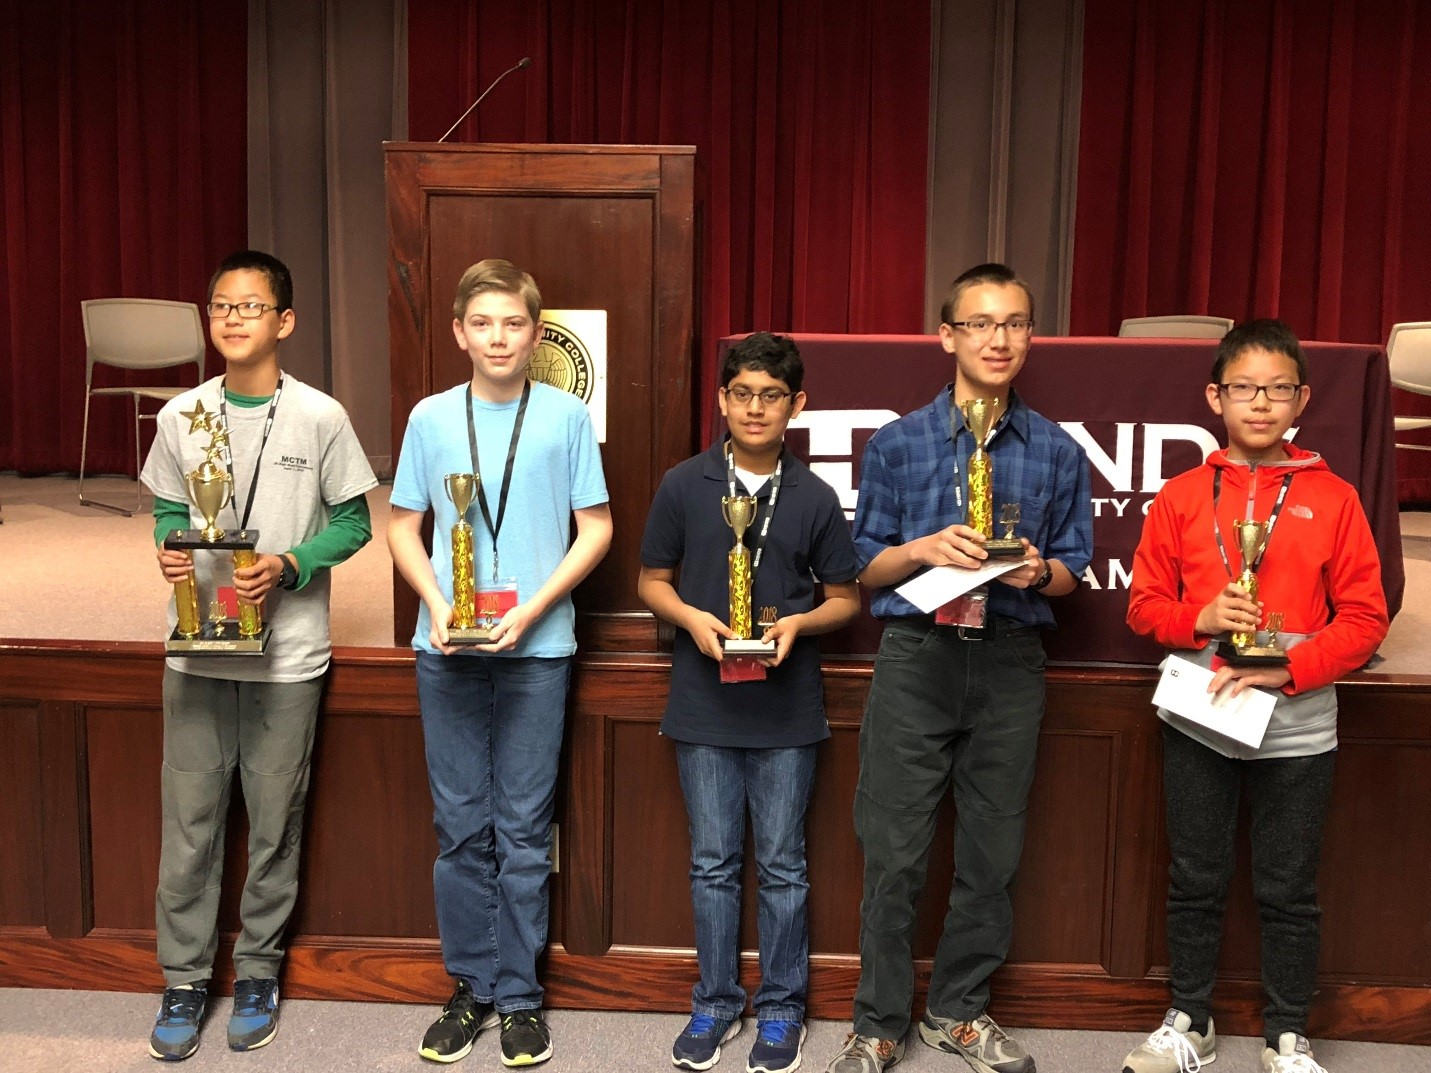 7th Grade Winners - 1st, Leo Mei, Madison Middle School2nd, Joshua Bowman, Northwest Rankin Middle School3rd, Architesh Prasad, Tupelo Middle School4th, Ryan Goodwin, East Central Middle School5th, Kenny Suzuki, Madison Middle School